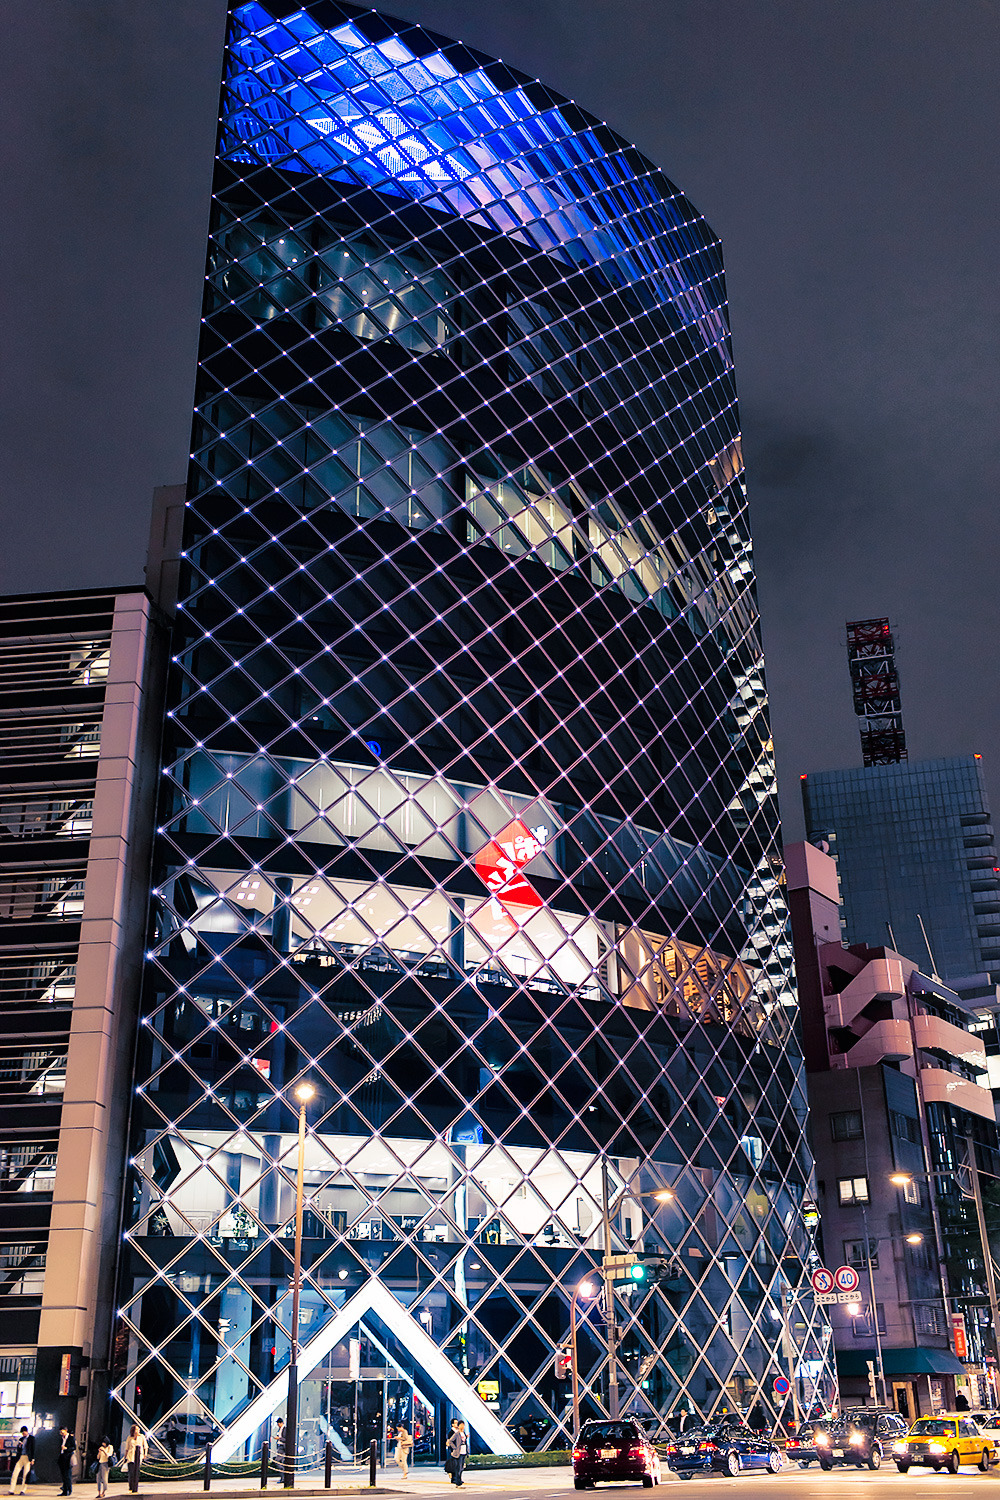 Cool looking building seen in the Akasaka area of Tokyo.